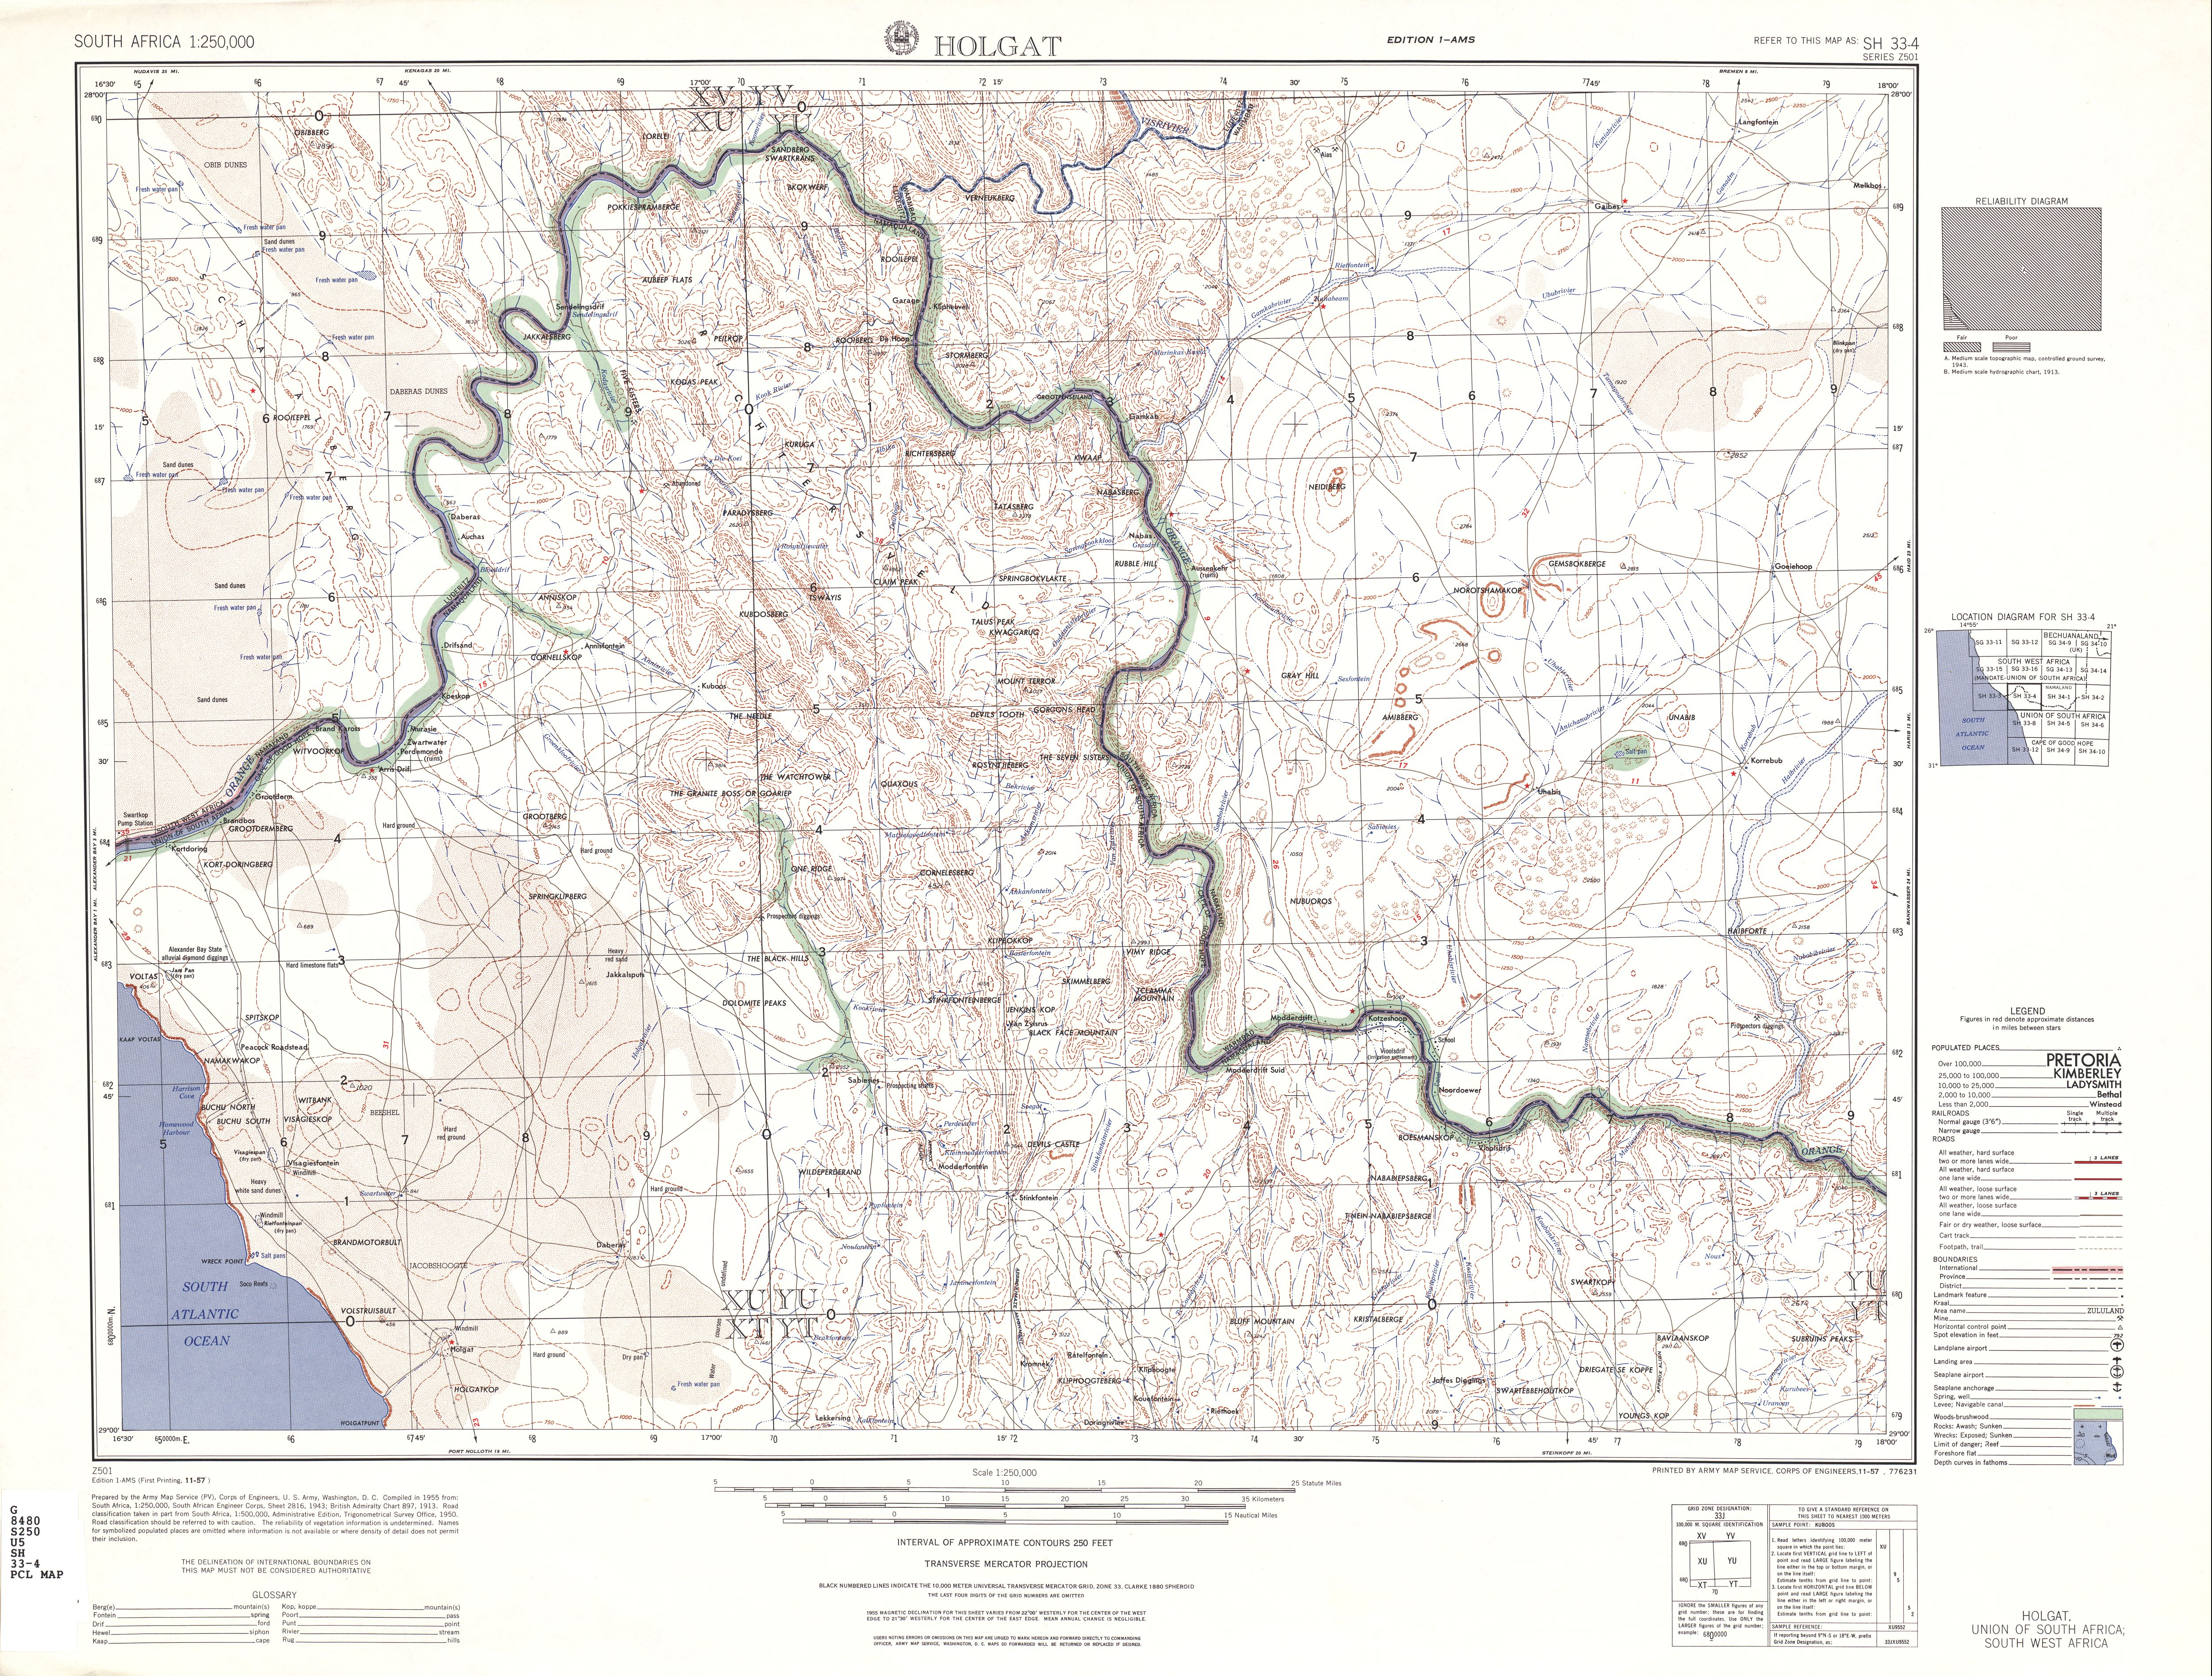 Holgat Topographic Map Sheet, Southern Africa 1954